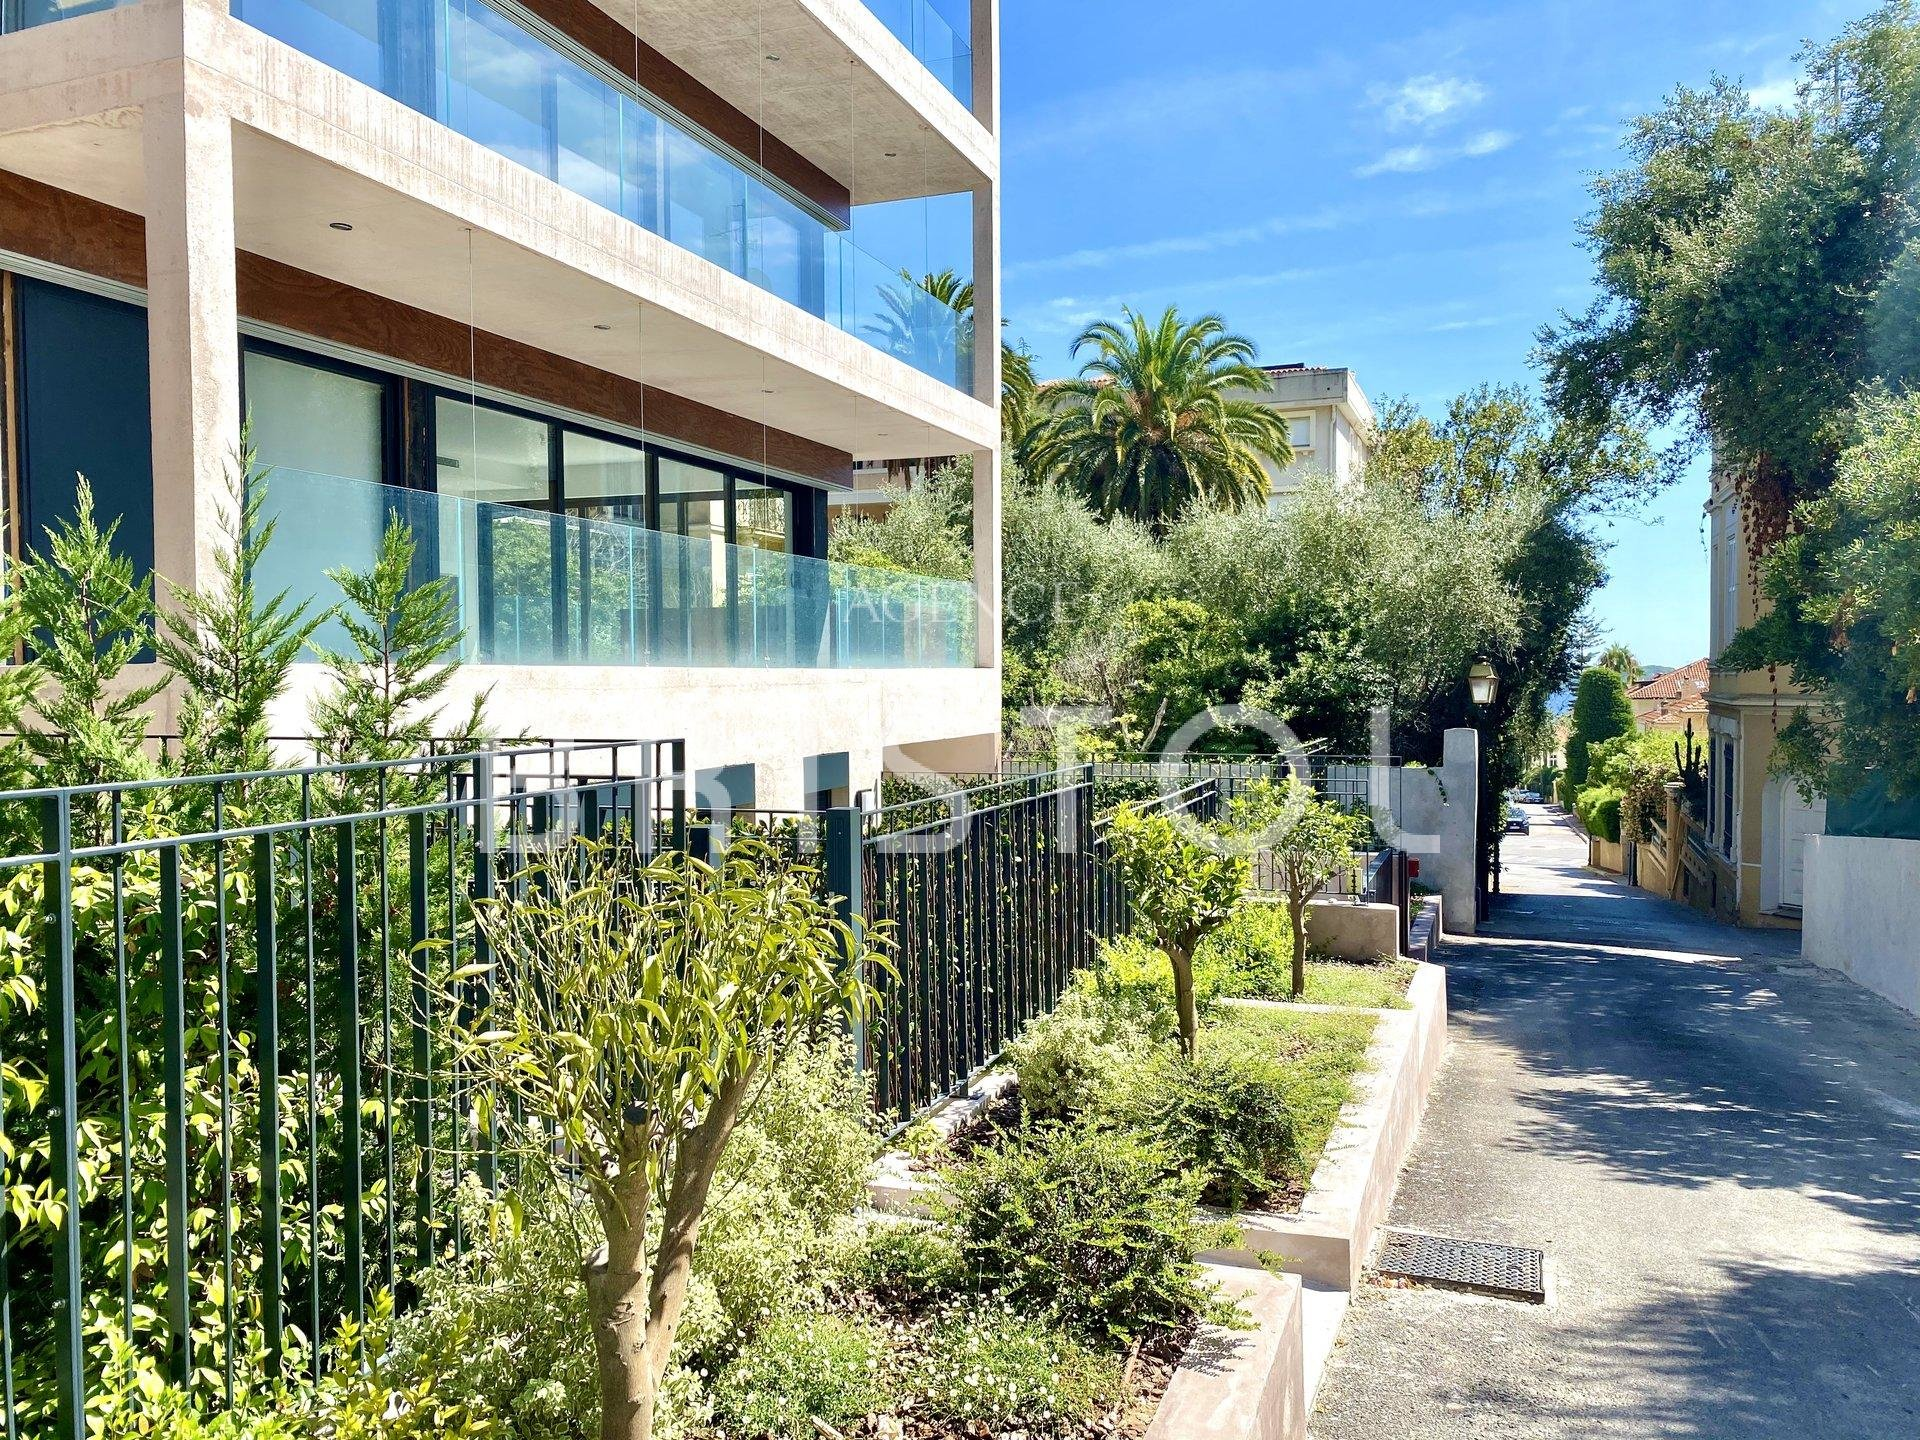 Brand new development - superb 2 bedrooms apartment in Beaulieu sur Mer downtown